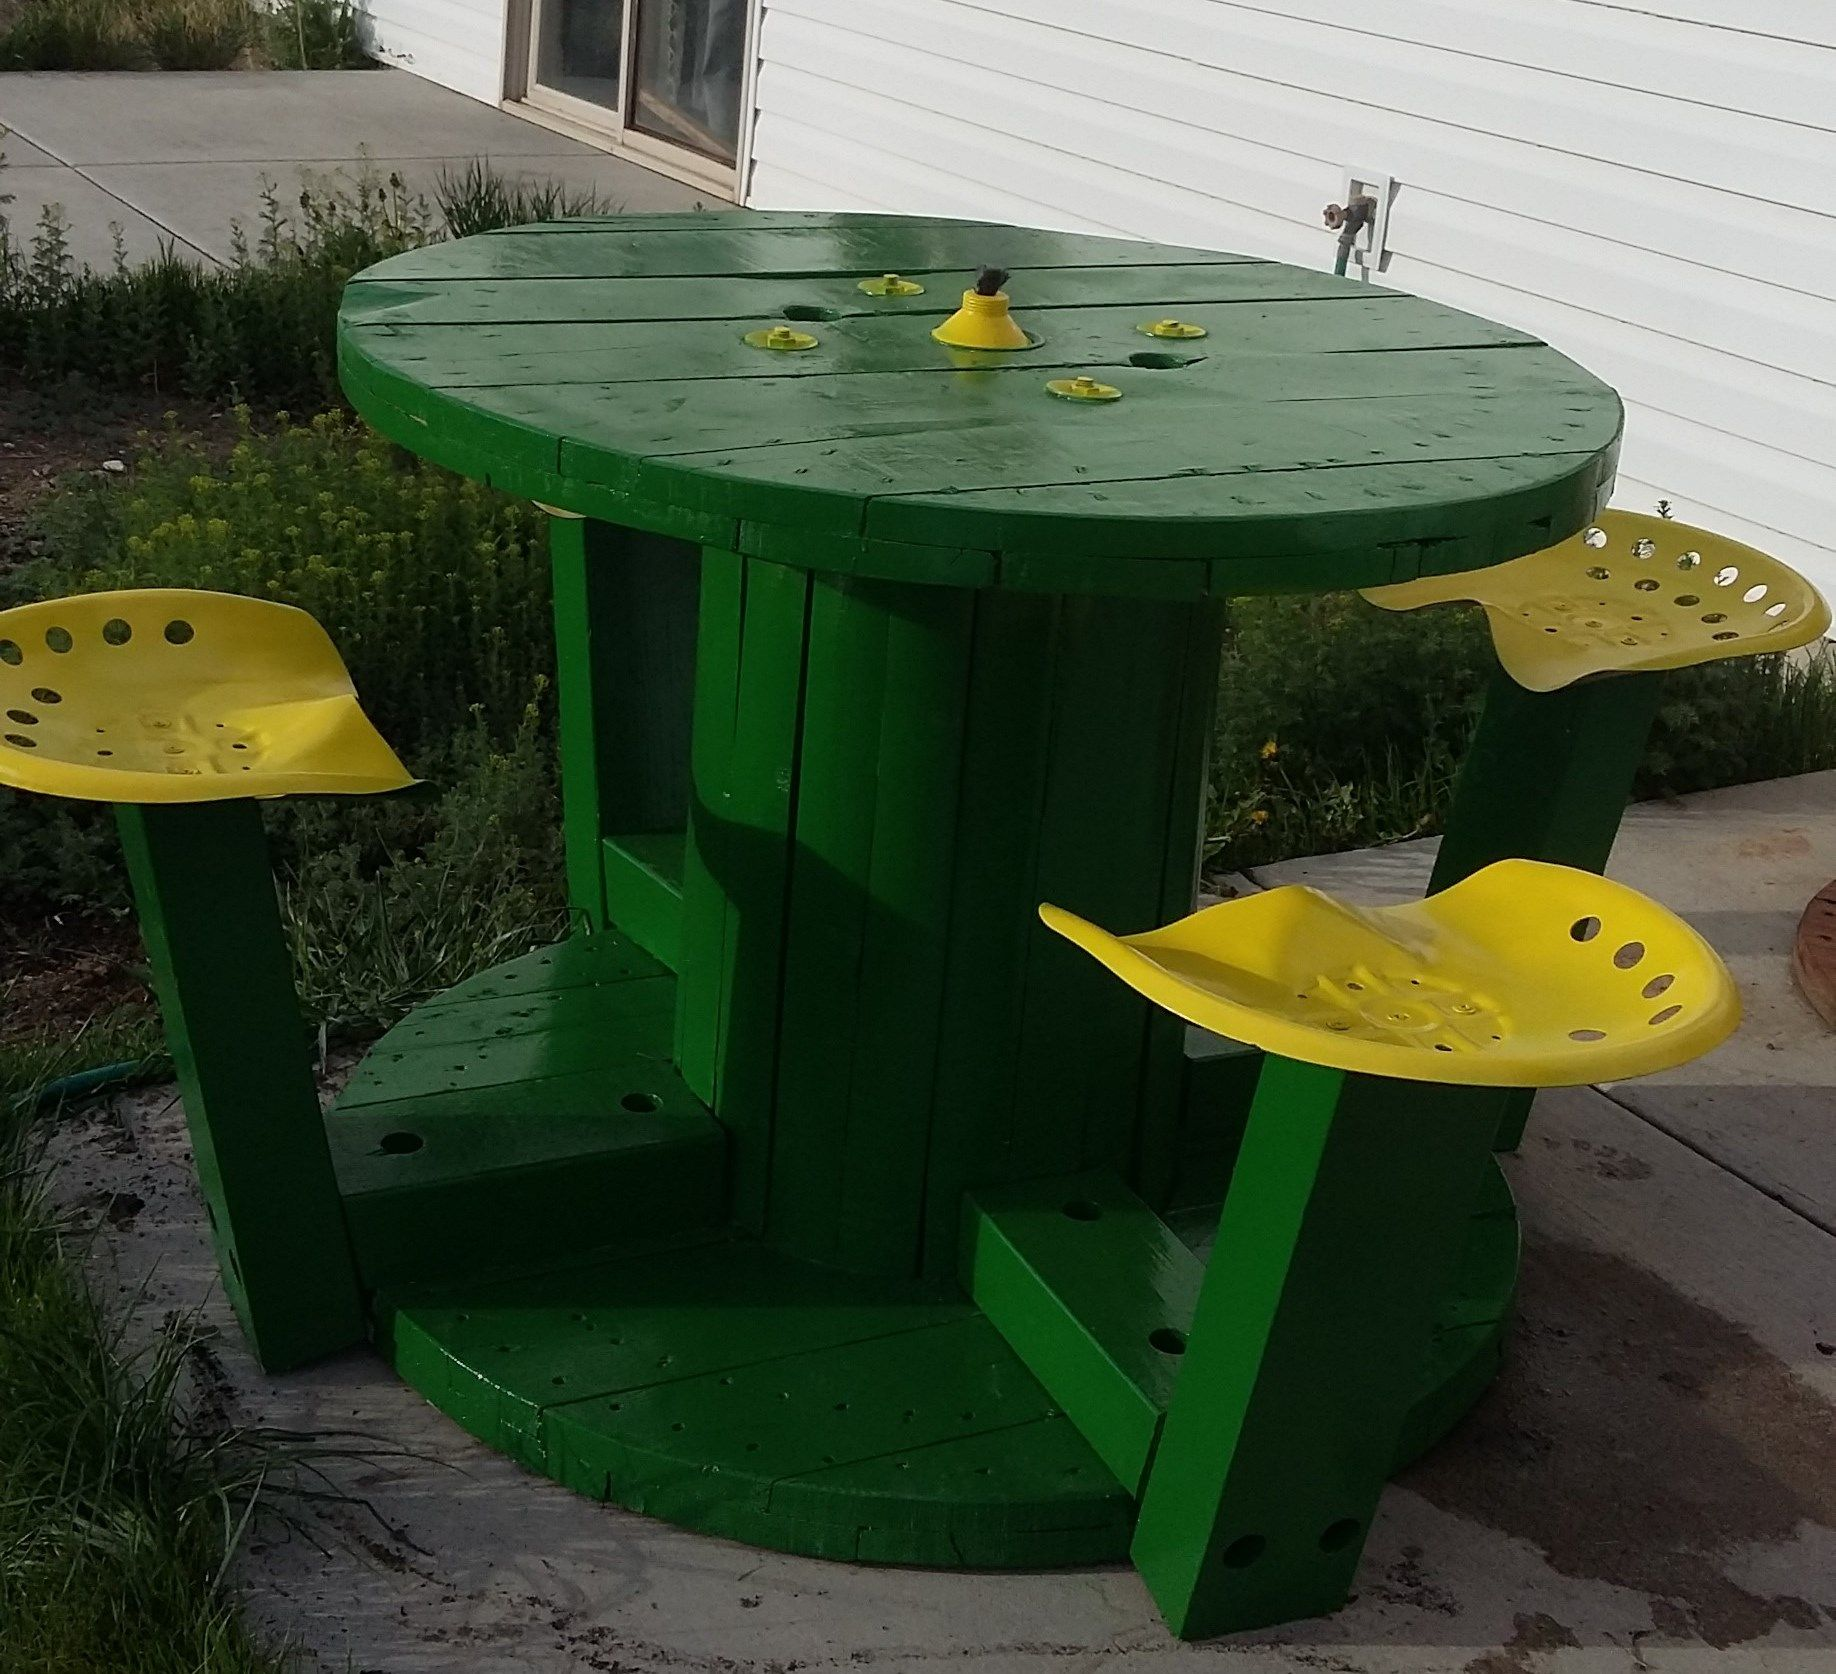 John Deere wire spool with tractor seat and tiki. Wire spool outdoor dining  table, wire spool with tractor seats, wire spool table, wire spool ideas